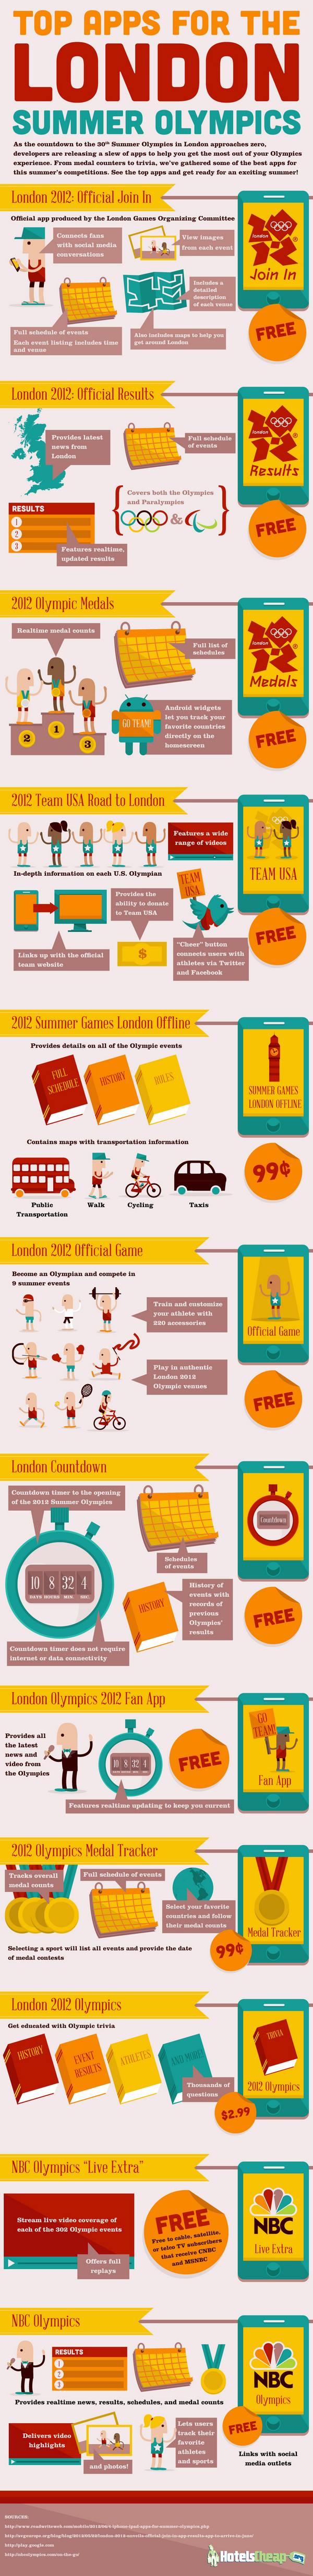 london_summer_olympics_apps_small1